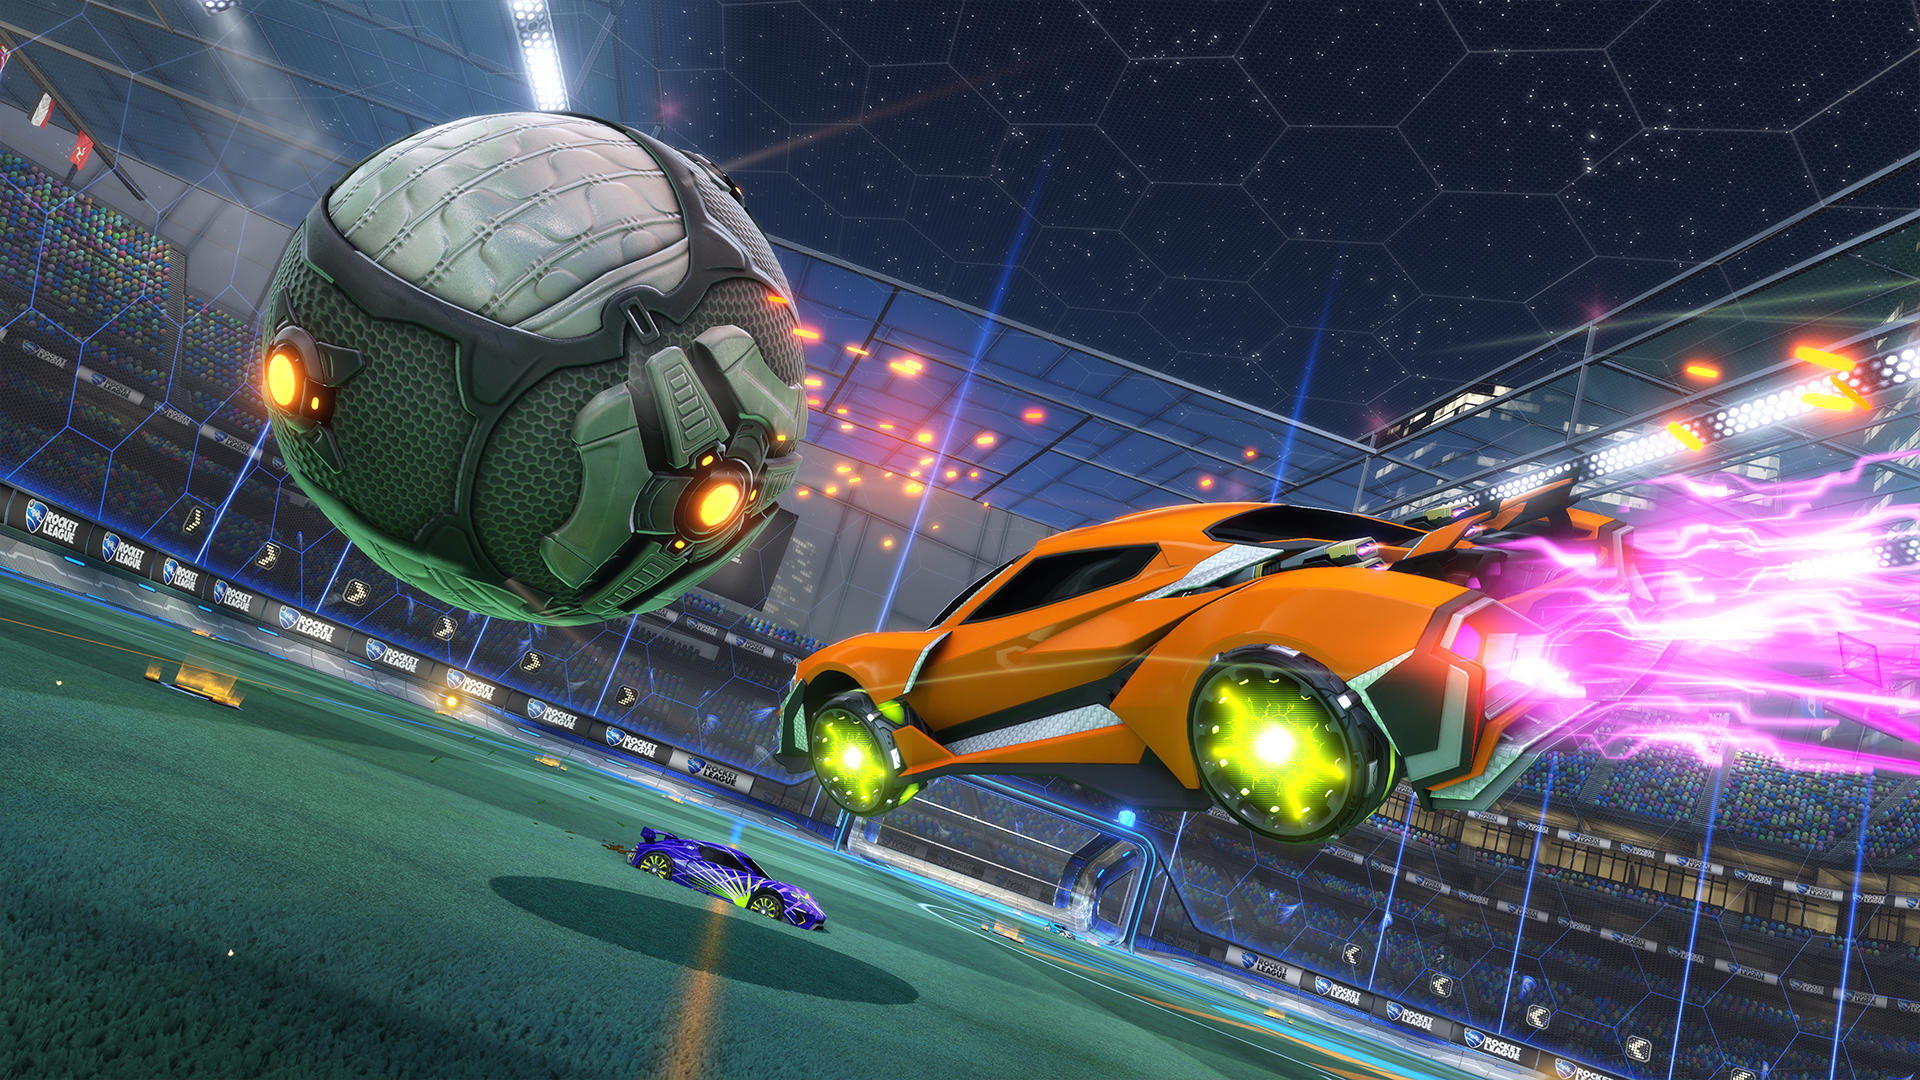 A screenshot from Rocket League featuring a rocket powered orange car pushing a giant ball in a stadium